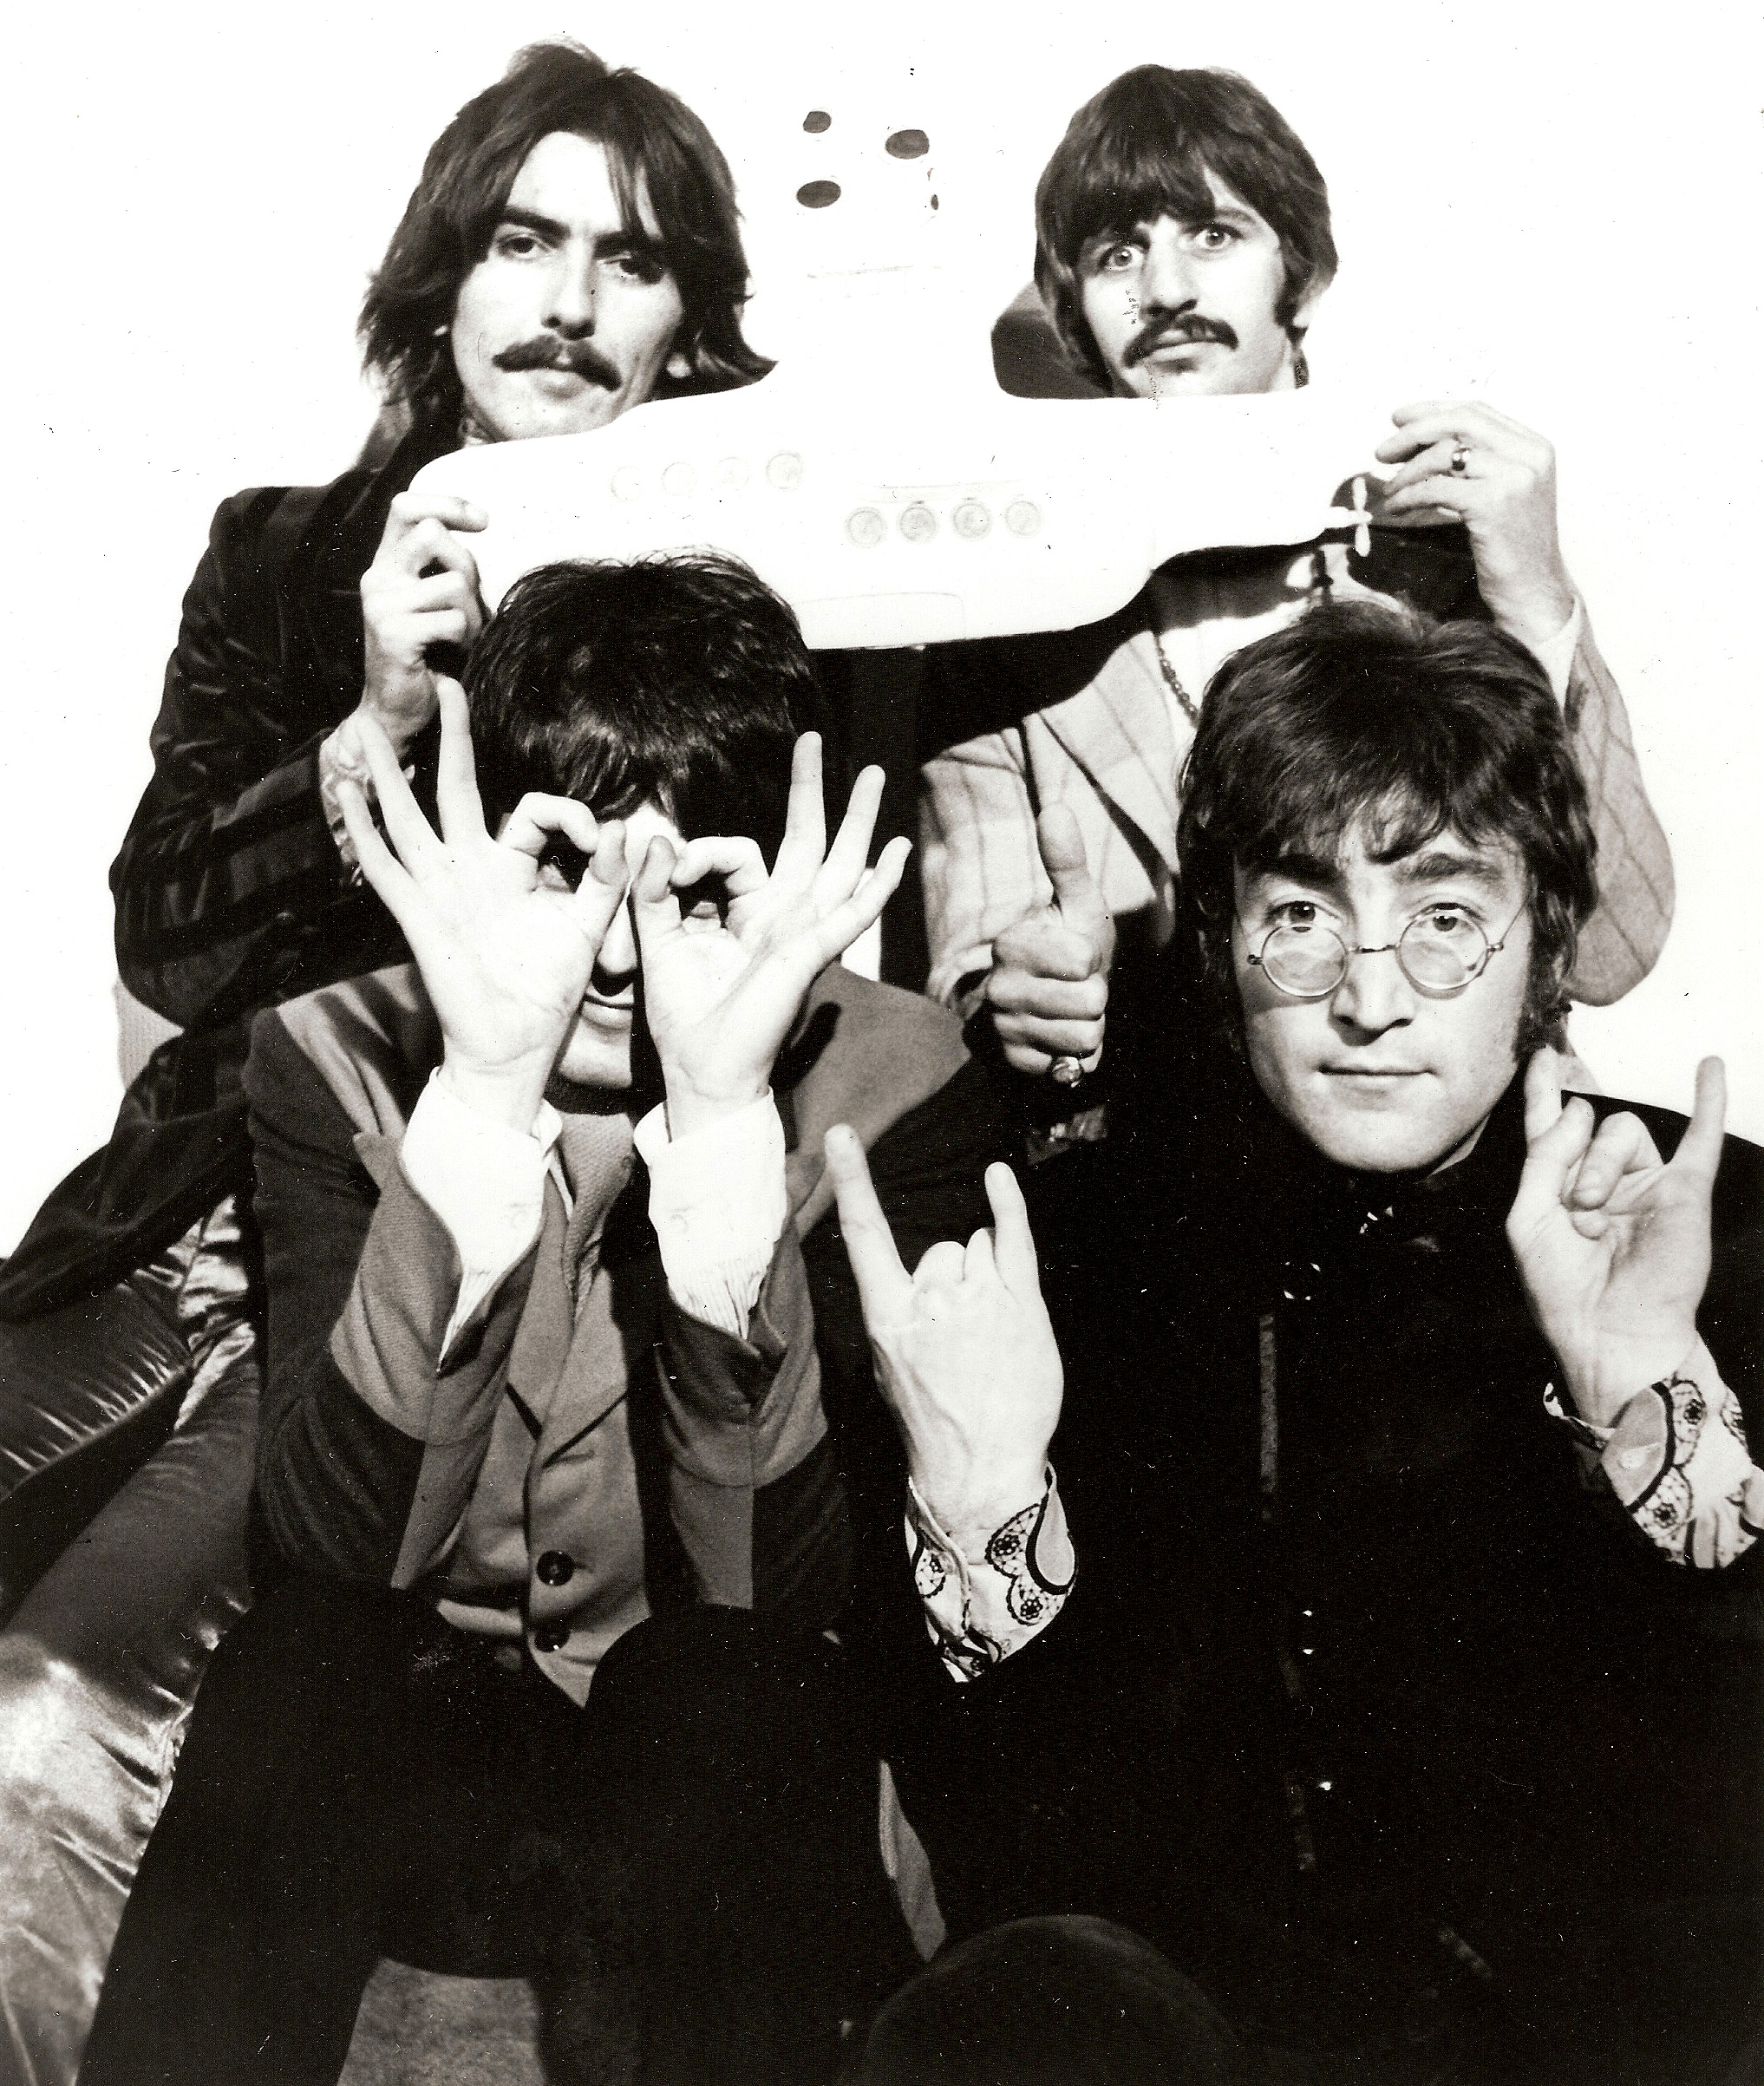 https://30daysout.files.wordpress.com/2009/02/beatles-yellow-submarine.jpg